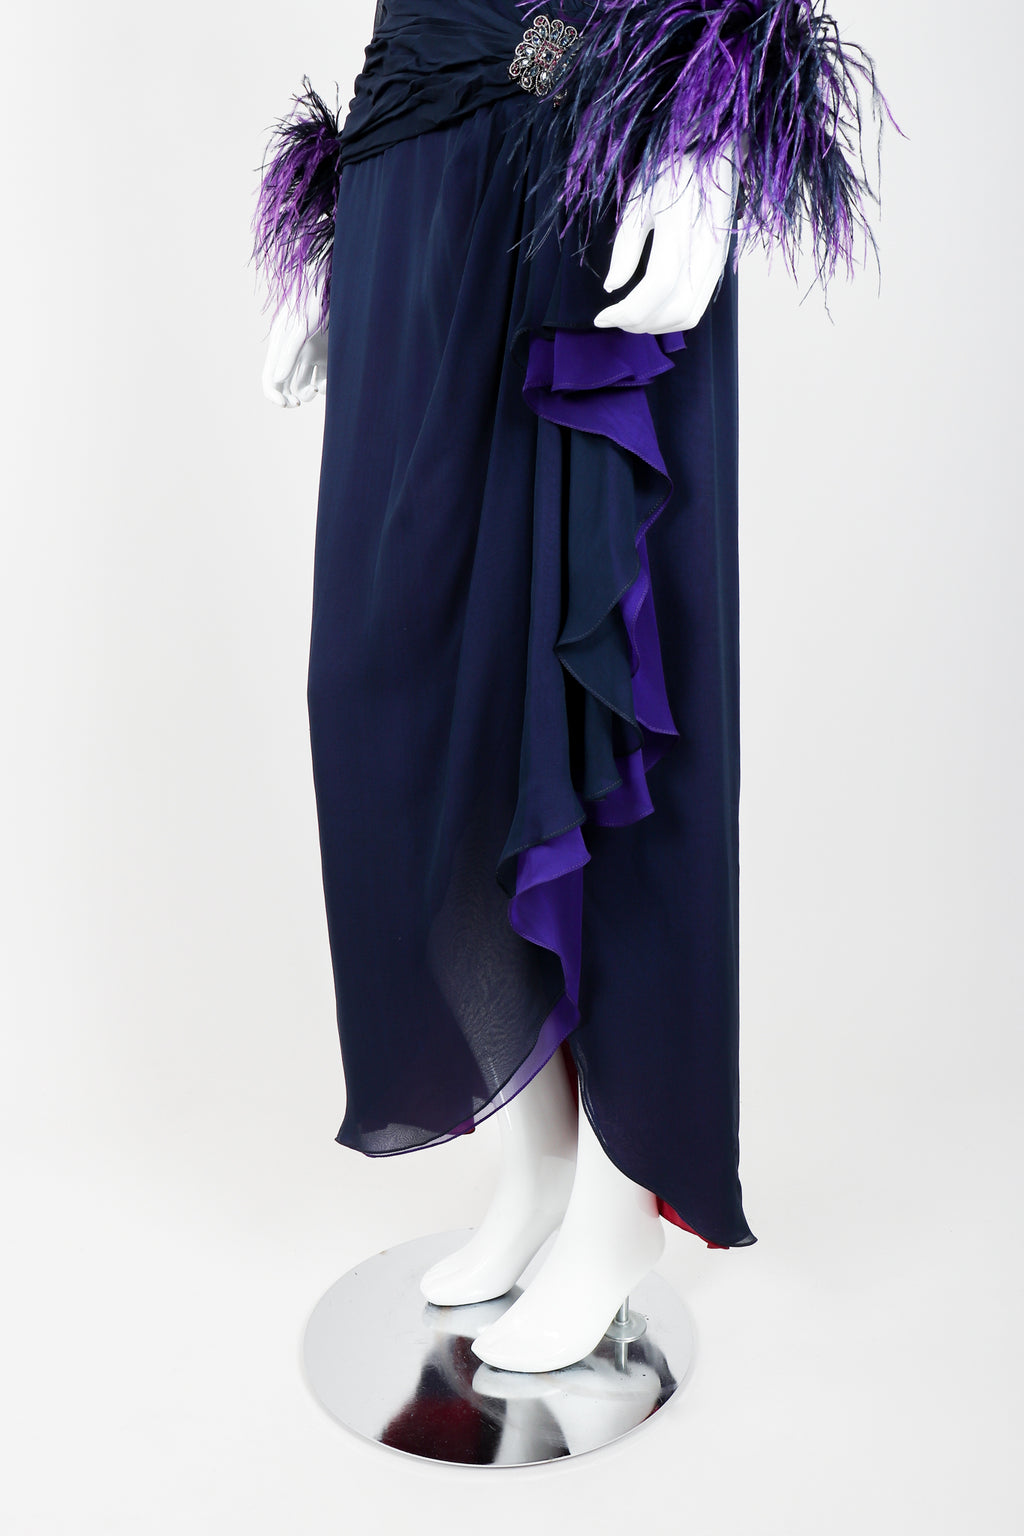 Vintage Mignon Feather Collar Draped Gown on Mannequin skirt at Recess Los Angeles